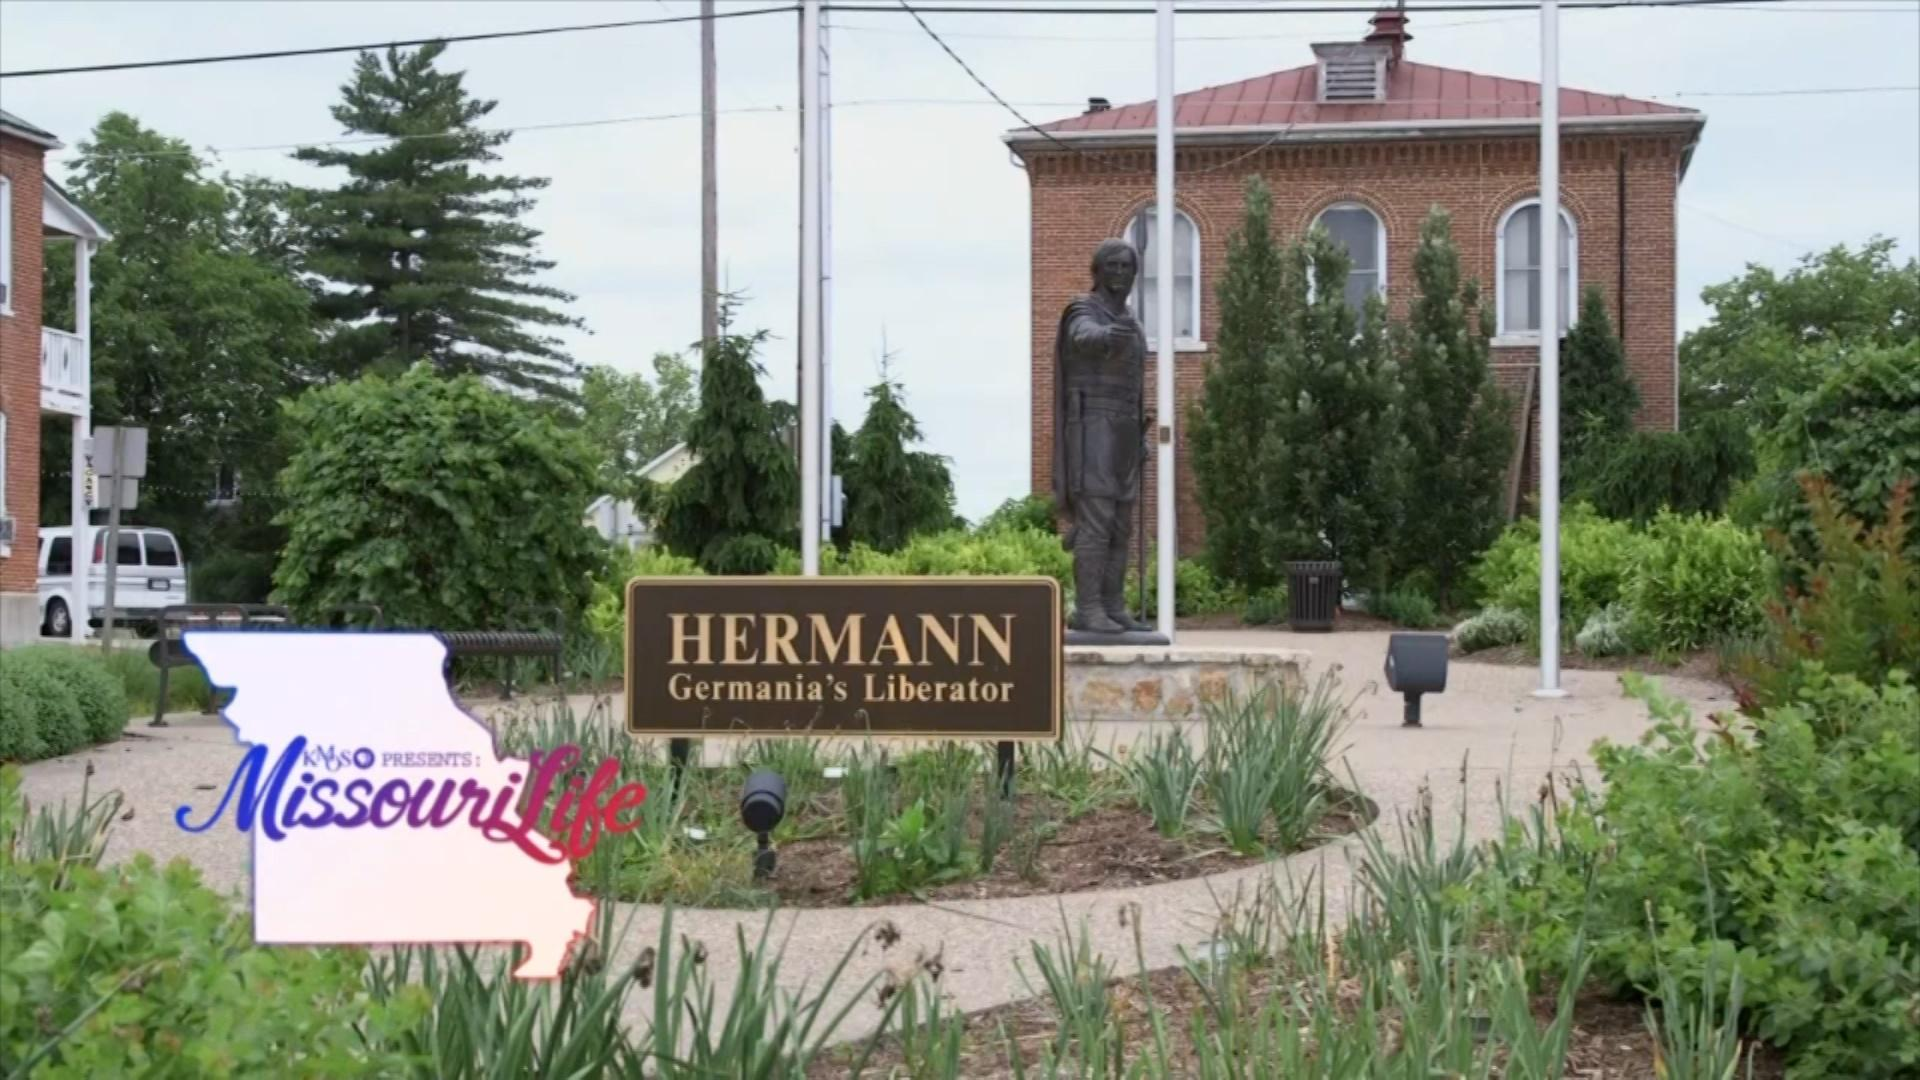 KMOS Presents Missouri Life Hermann